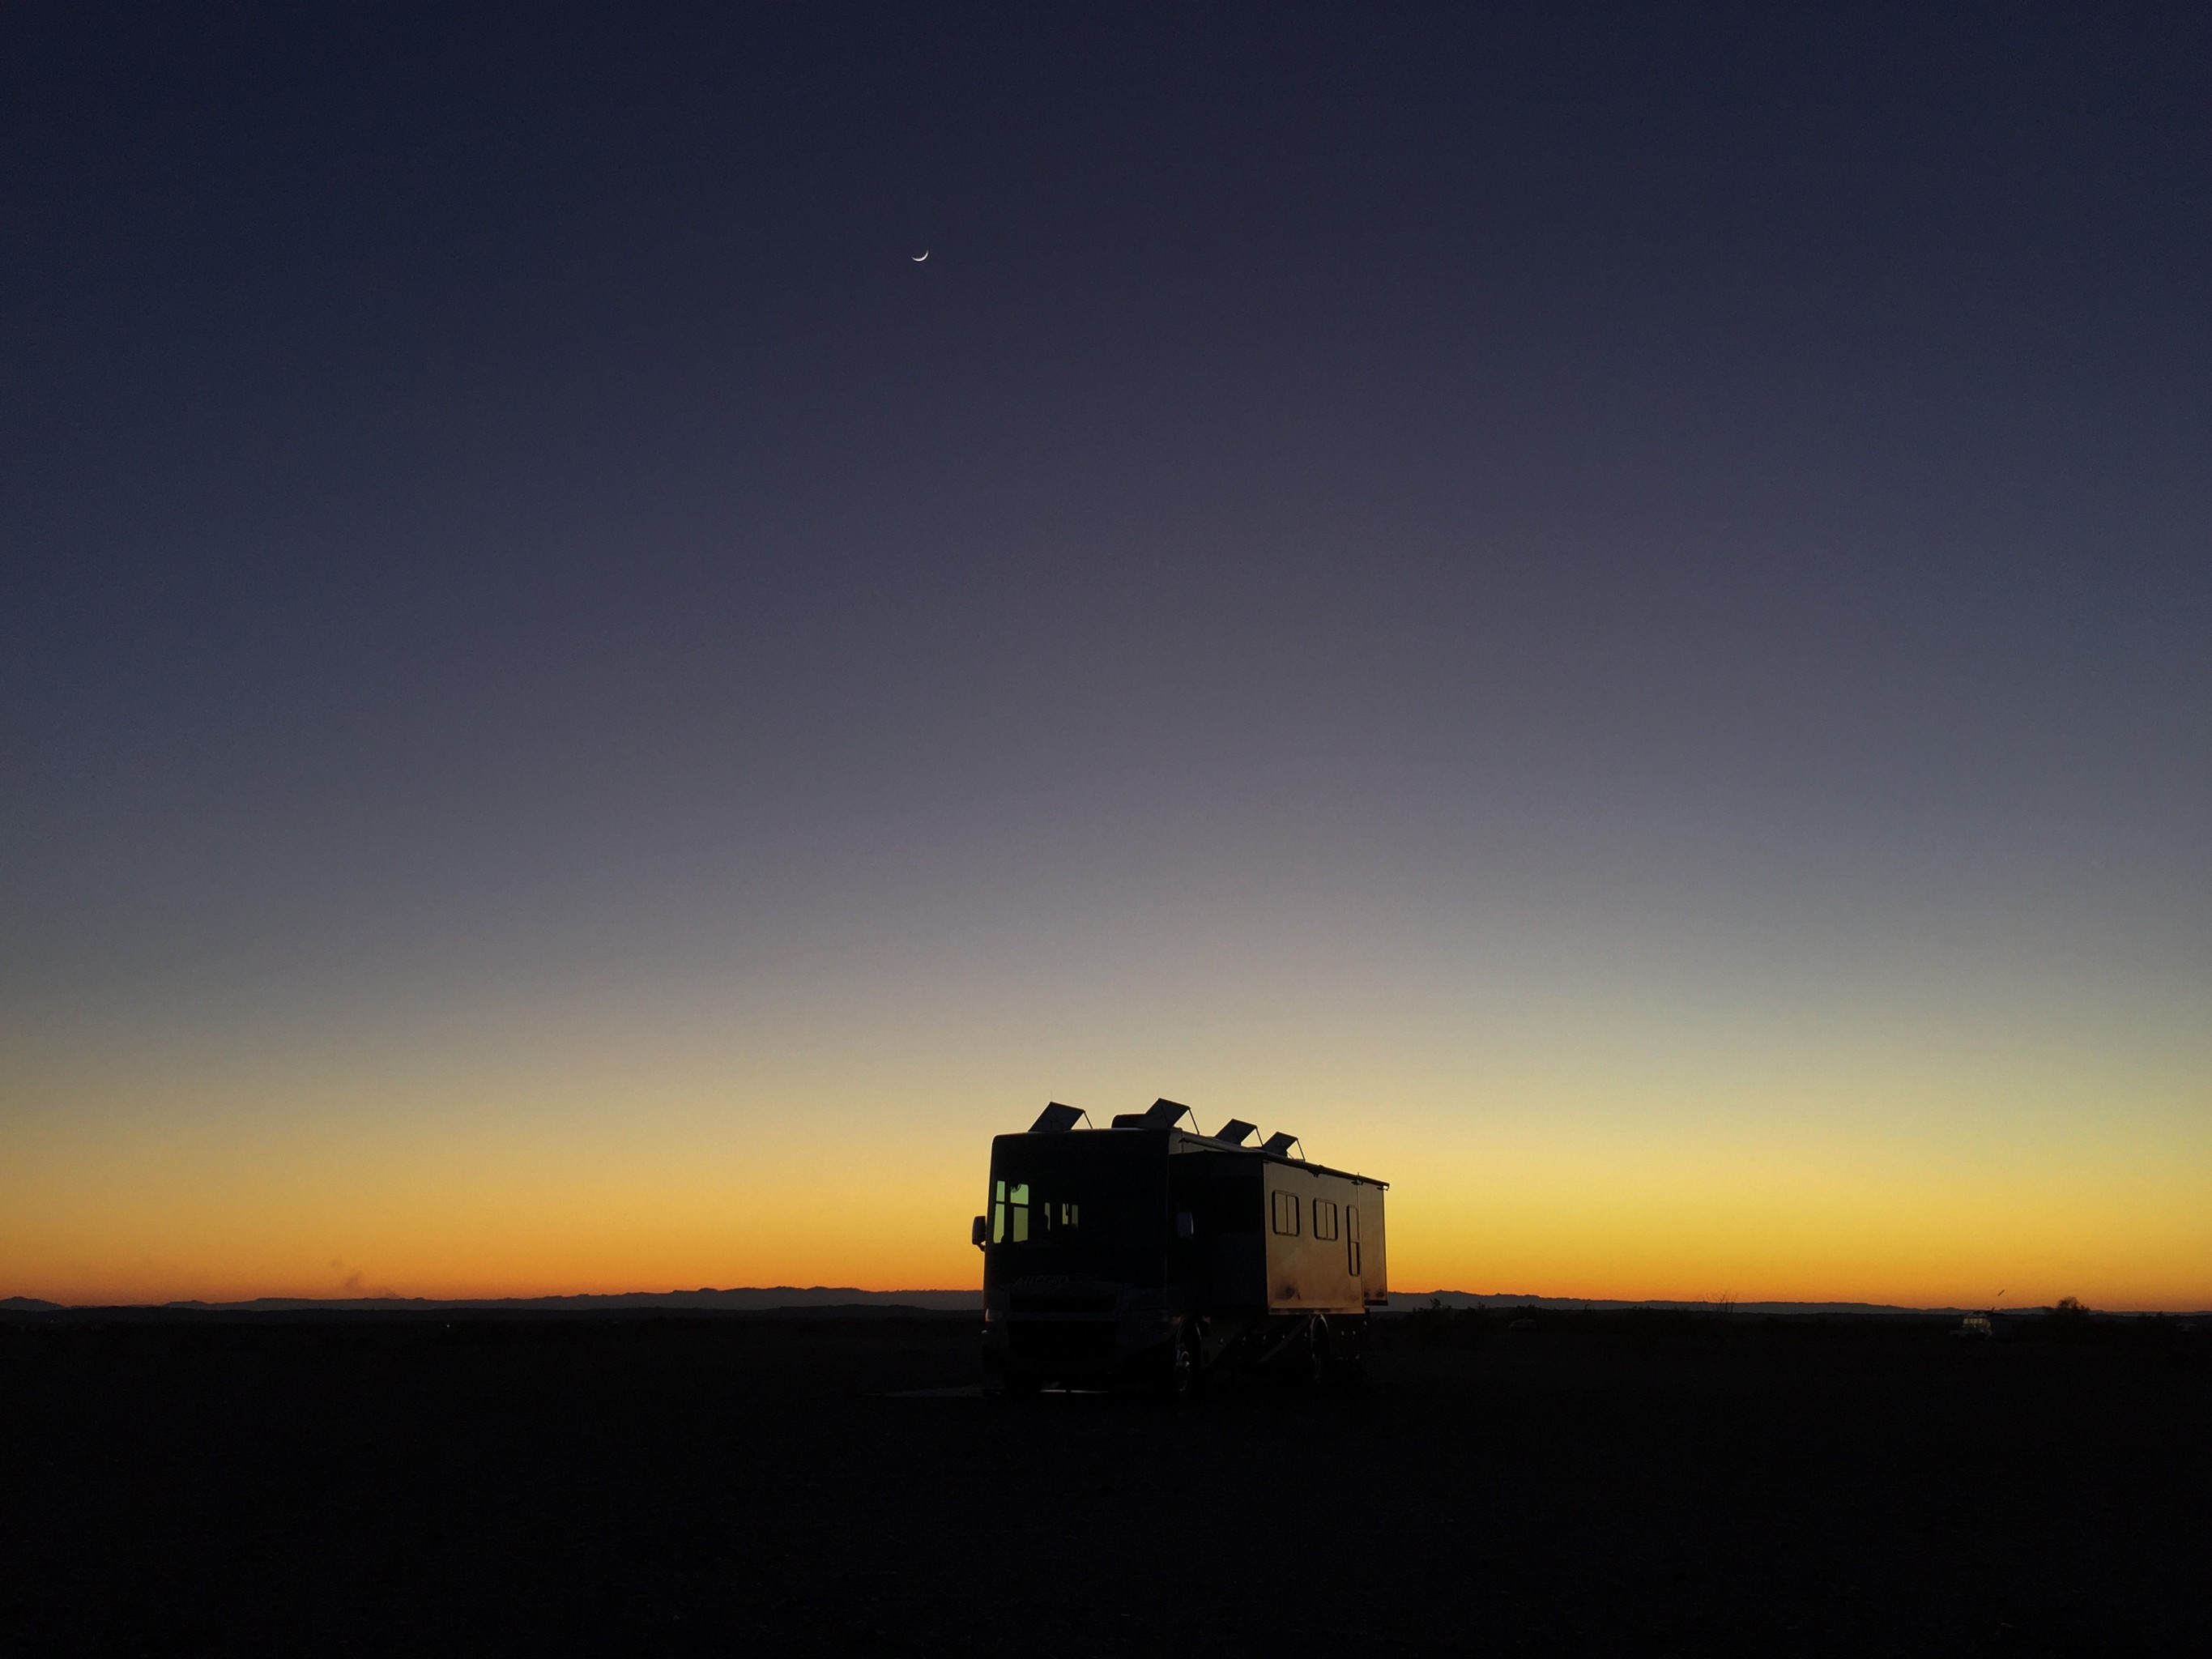 Life Rebooted Boondocking The Good The Bad And The Ugly